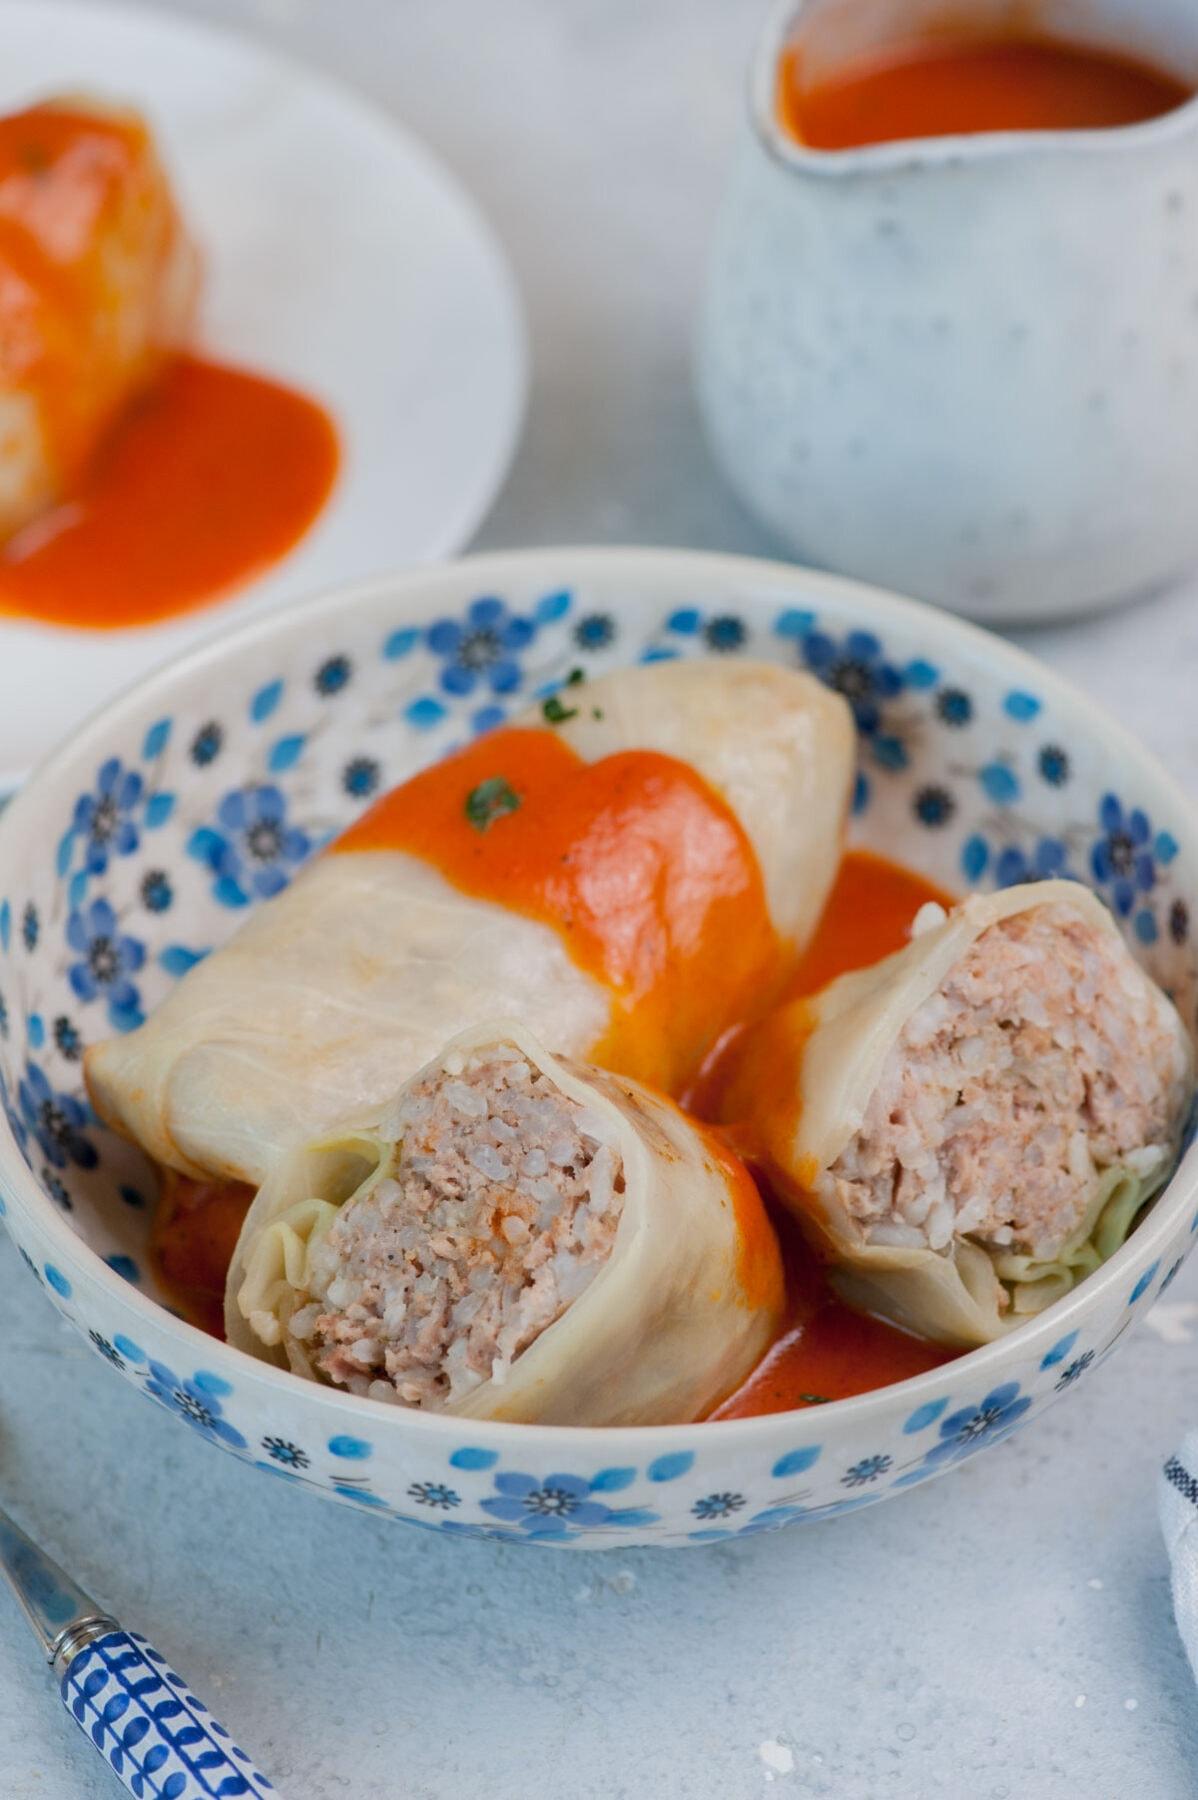 Stuffed cabbage rolls with tomato sauce in a white-blue bowl.